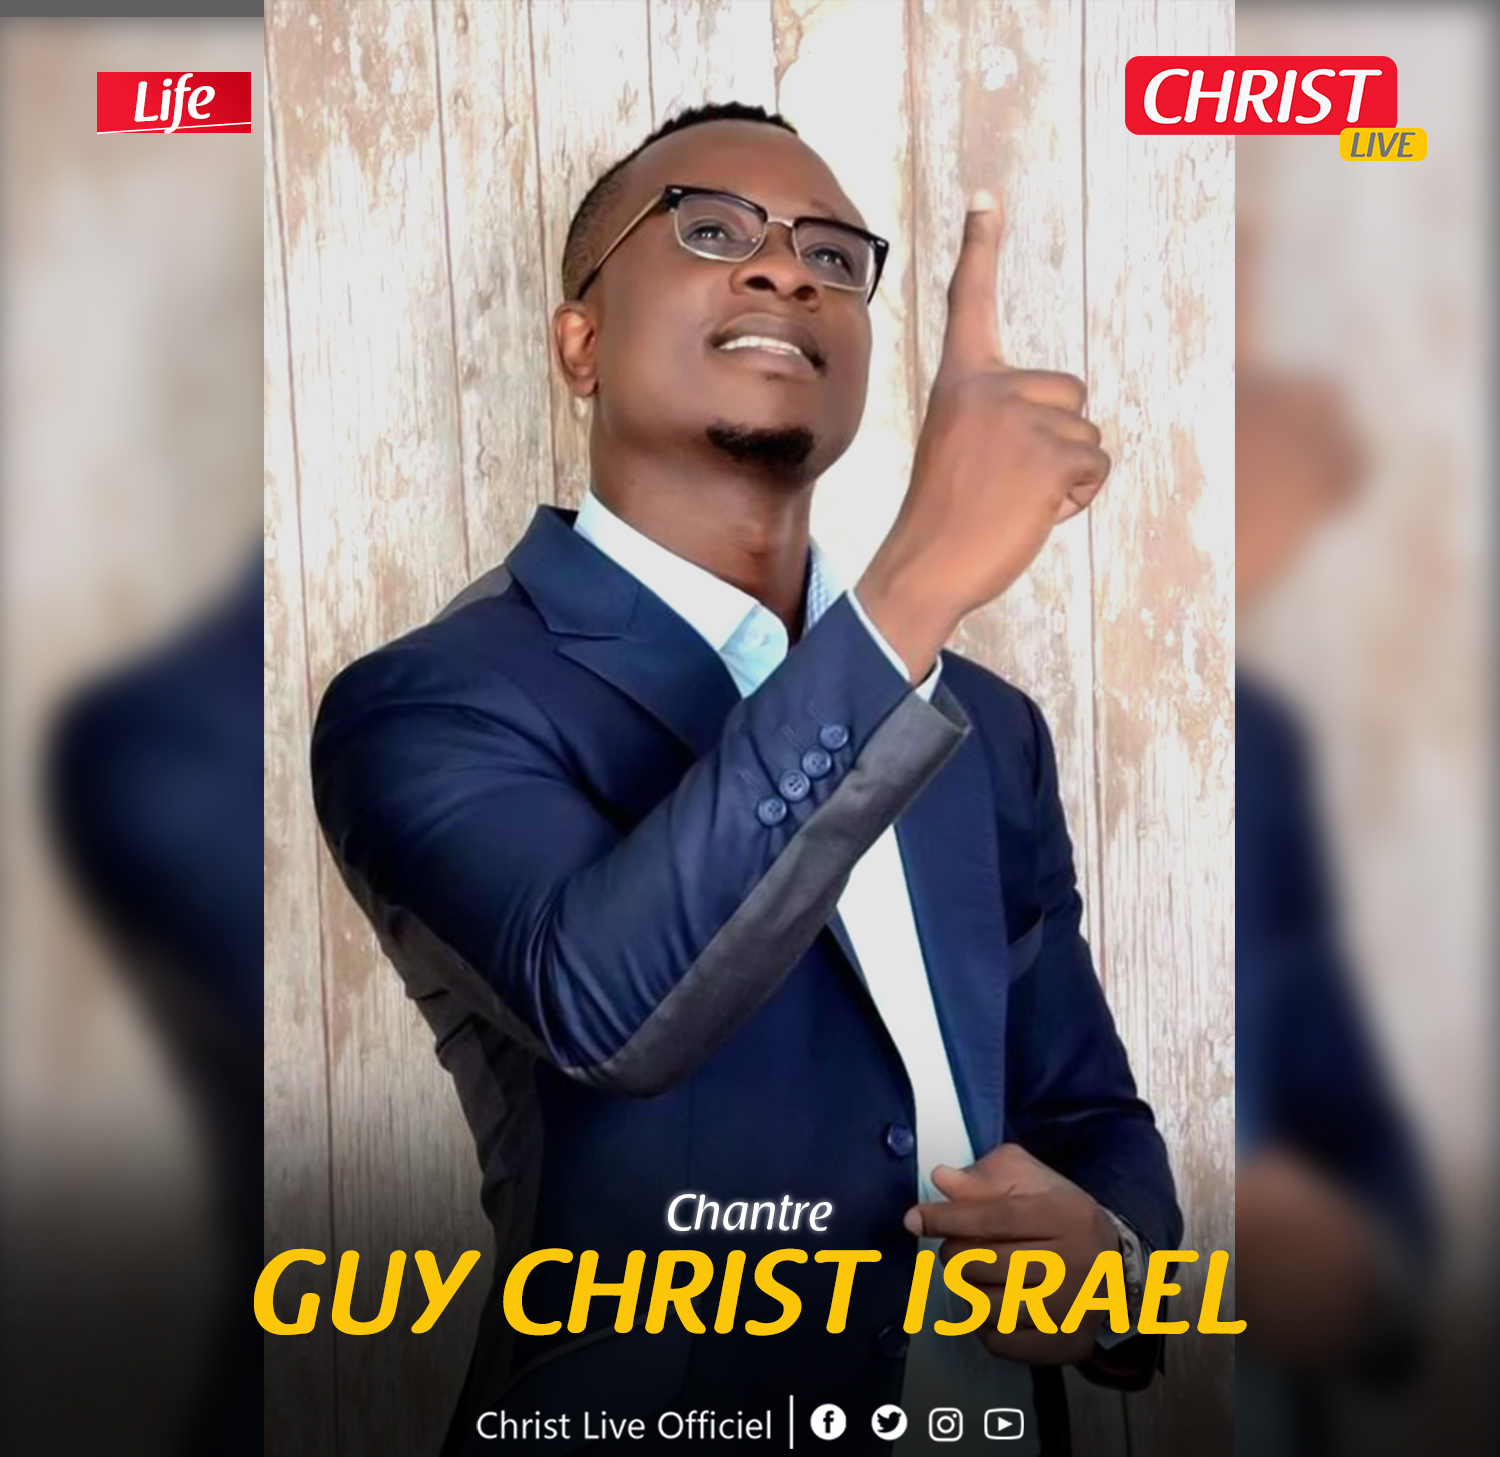 Guy Christ Israël, un véritable don pour l'adoration.